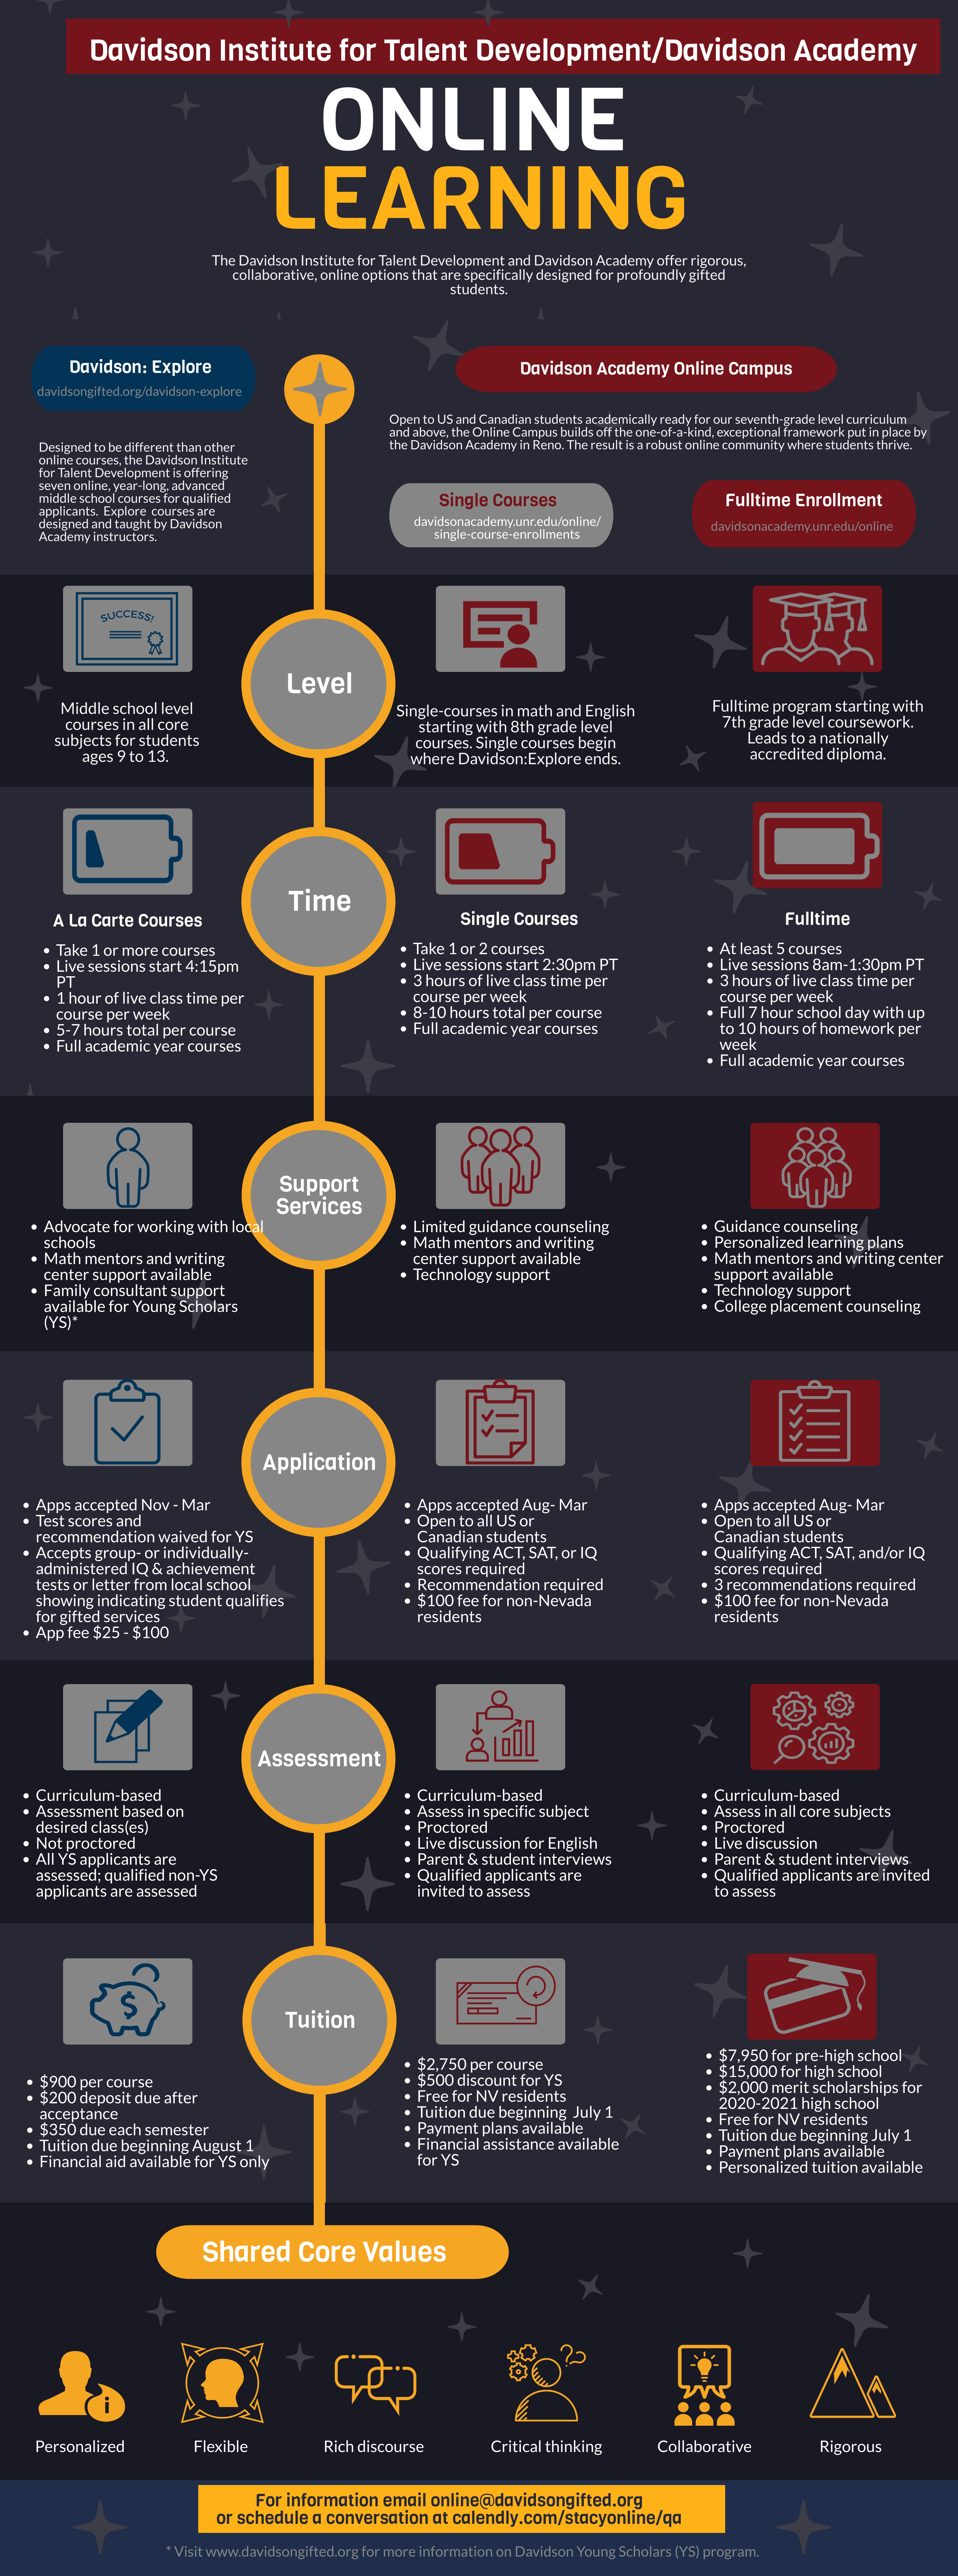 An Infographic comparing Davidson online programs